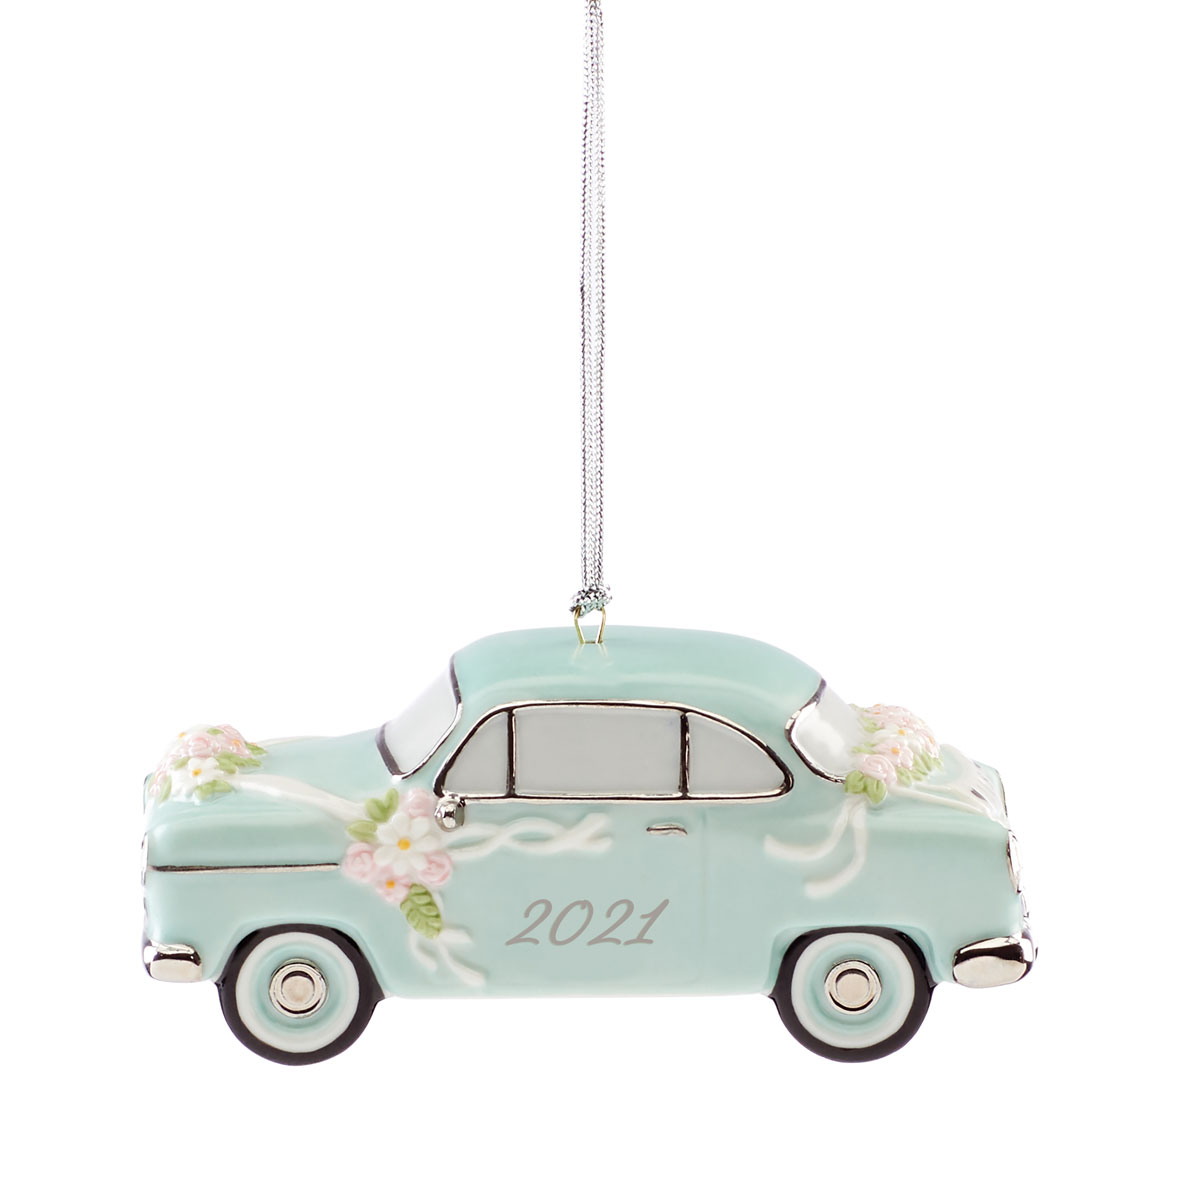 Lenox 2021 Just Married Vintage Car Dated Ornament